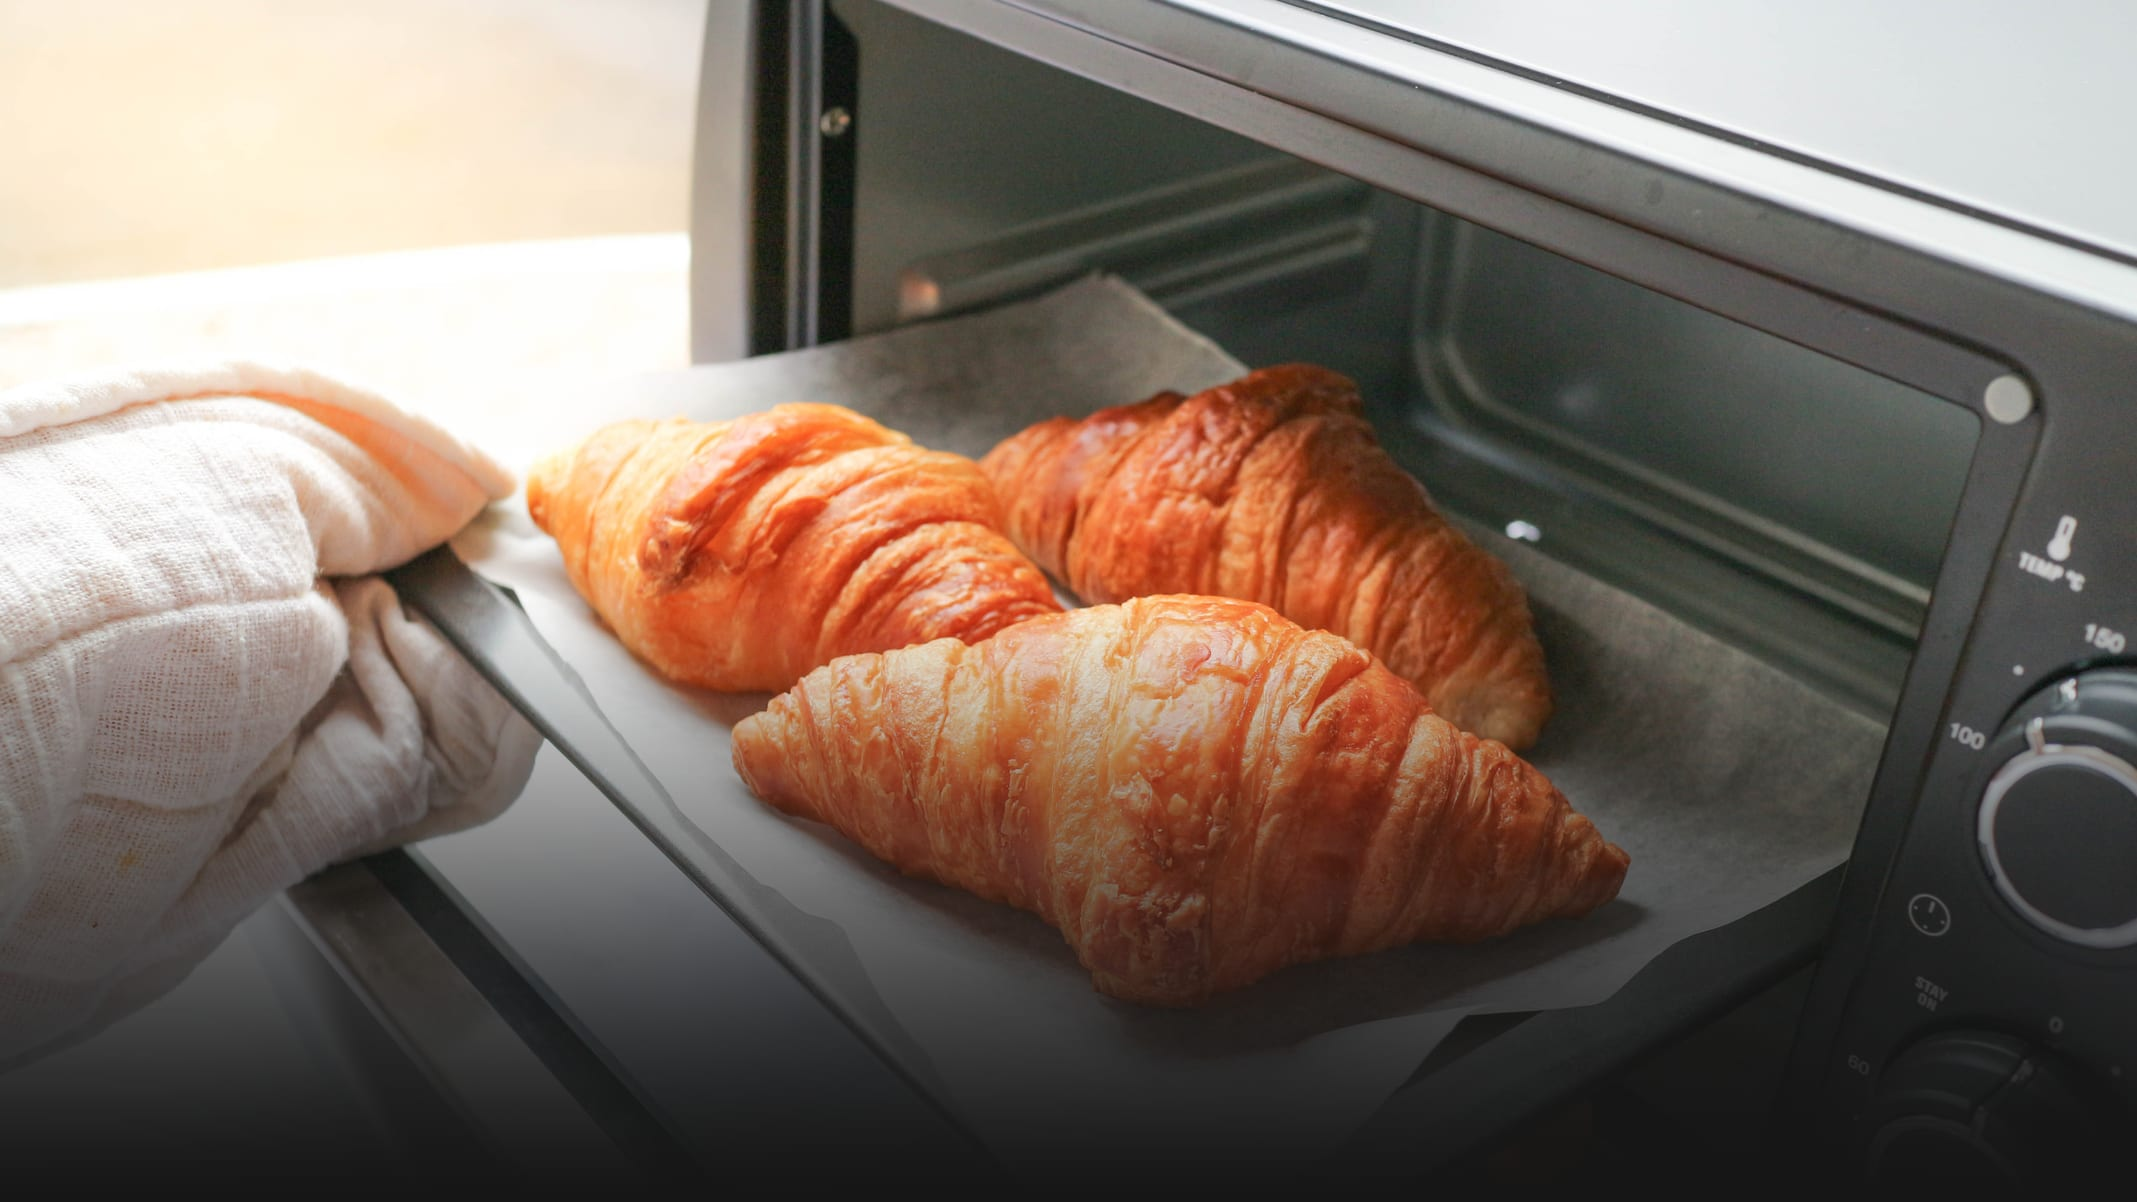 Own a Toaster Oven? These 3 Accessories Will Make Life Easier